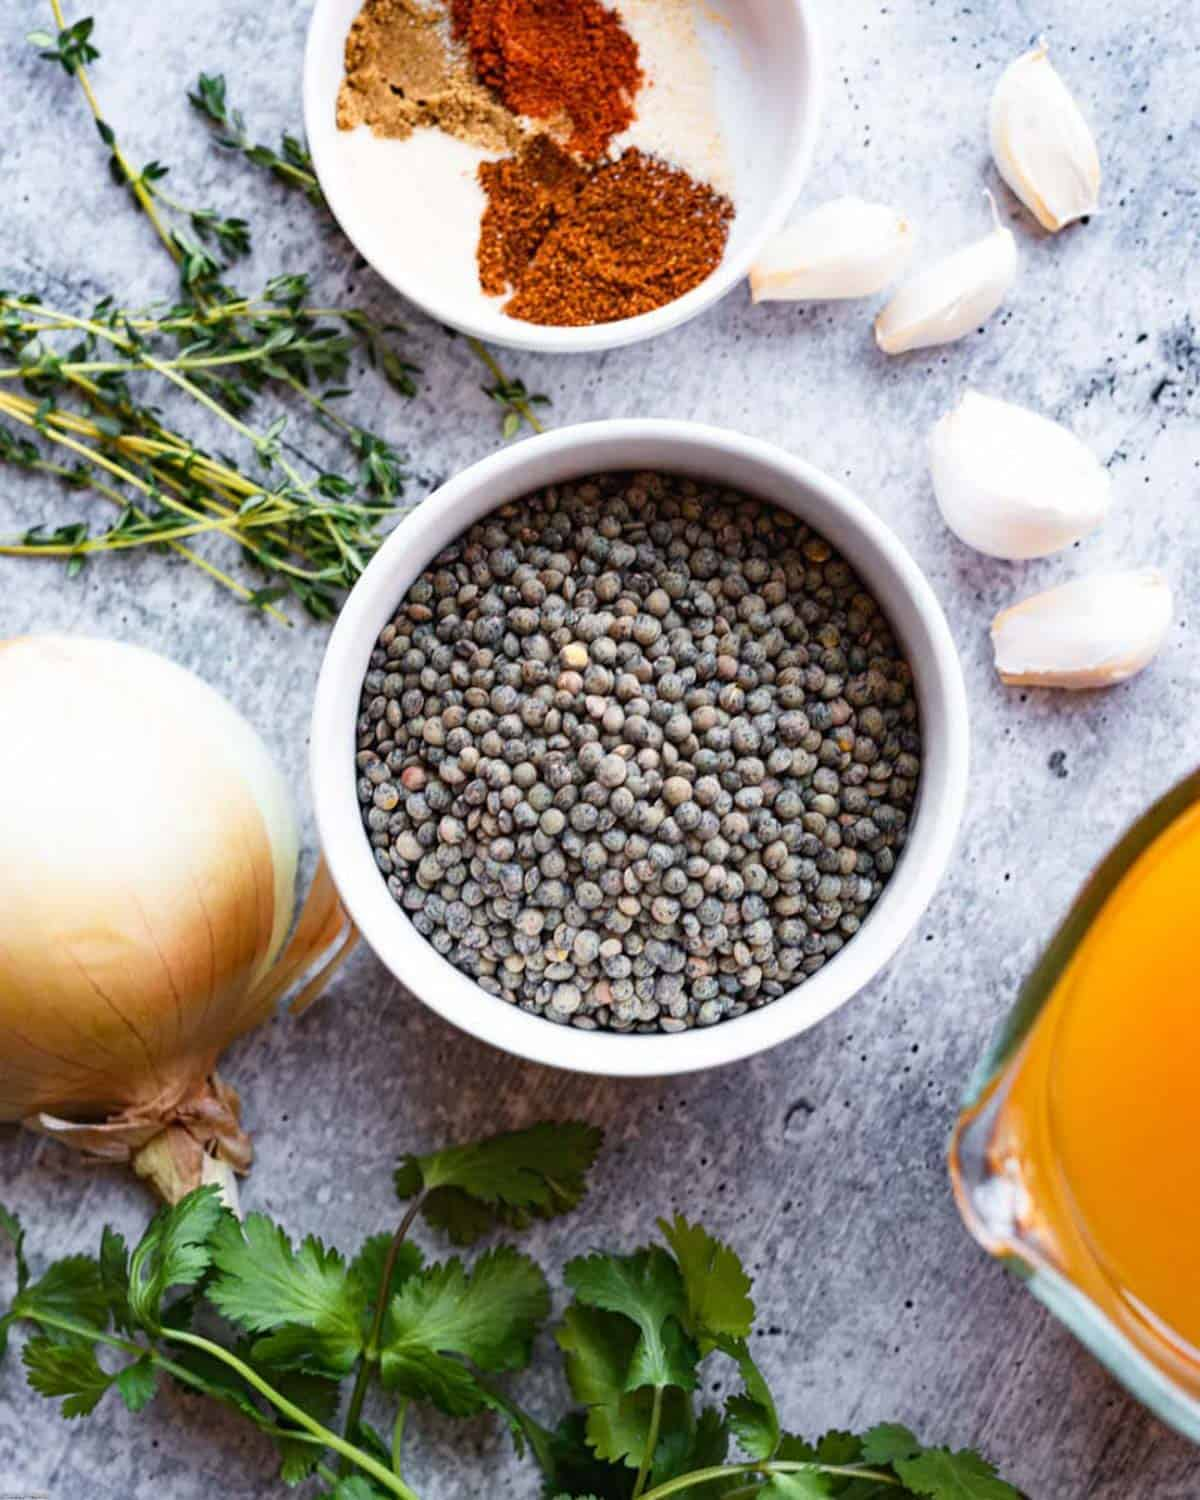 Ingredients for Lentil Chili and Thyme Roasted Corn: spices, fresh thyme, cilantro, dried French lentils, onion, garlic, and vegetable broth.